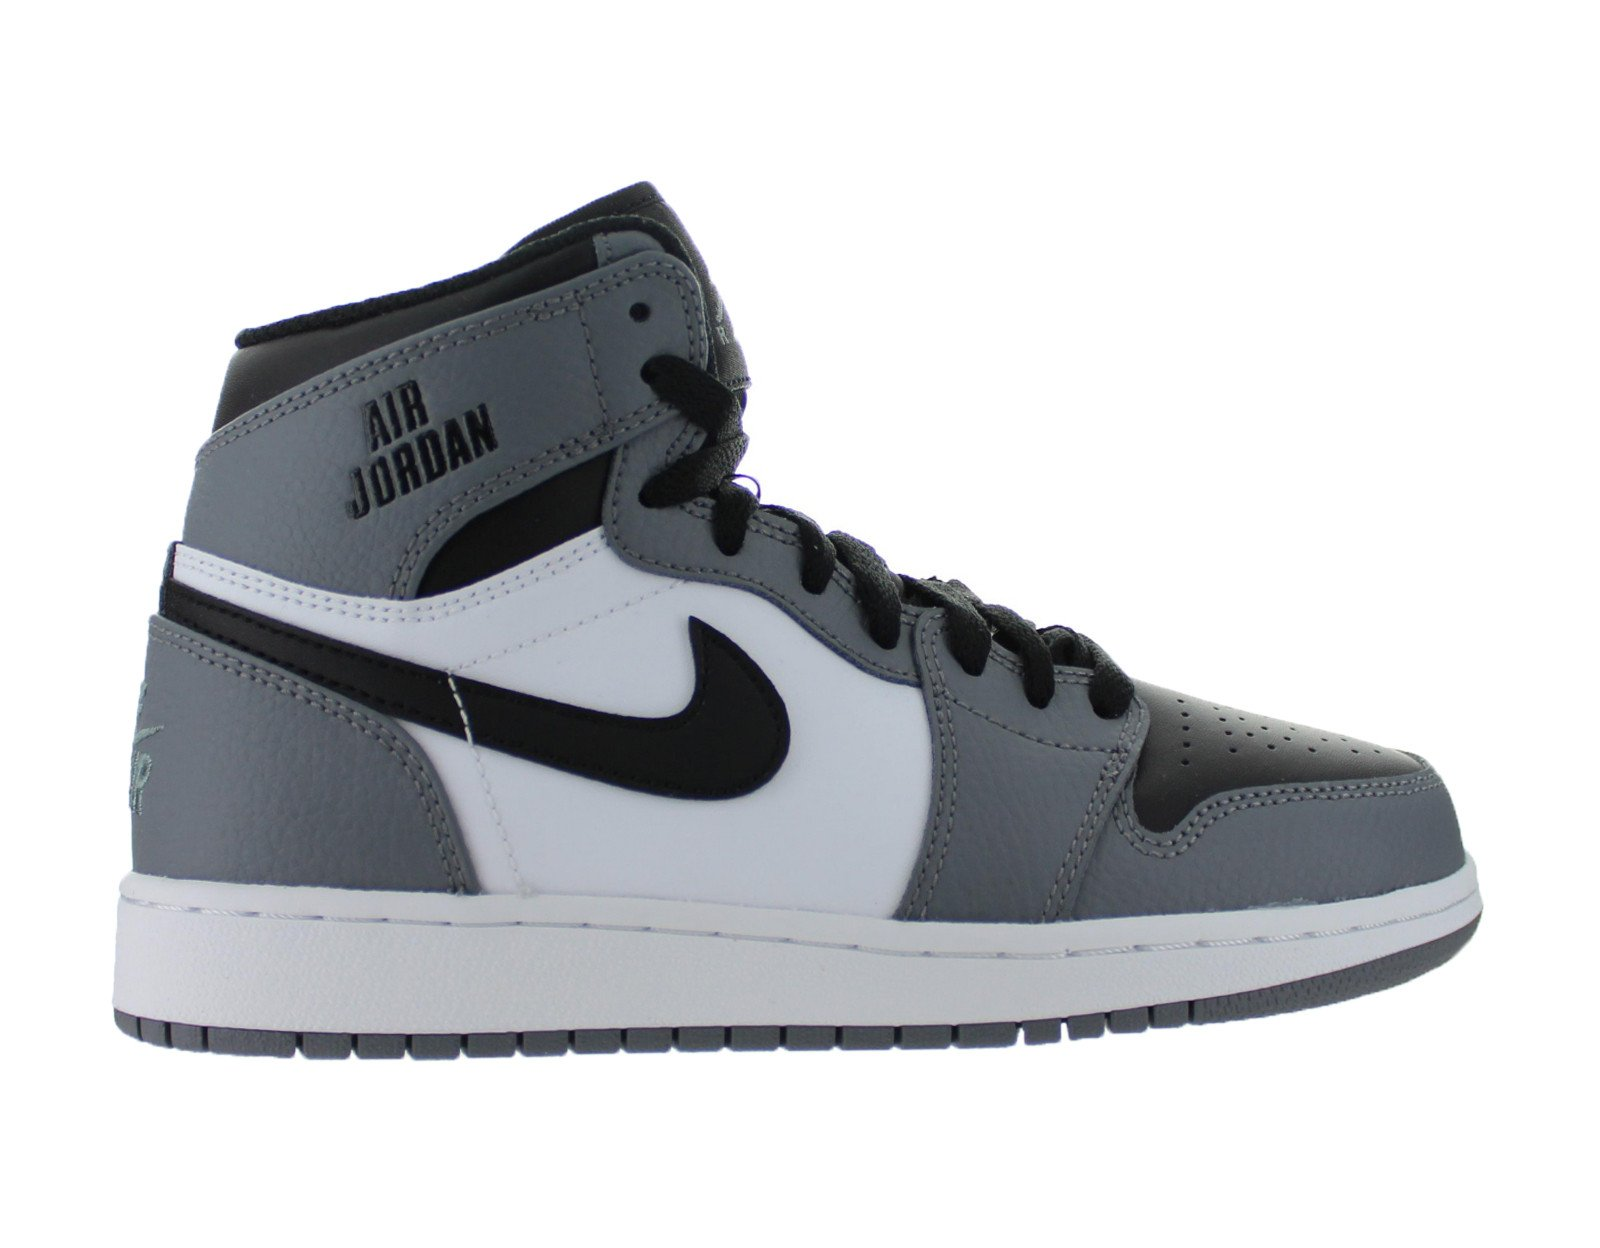 jordan aj 1 high rare air trampoline